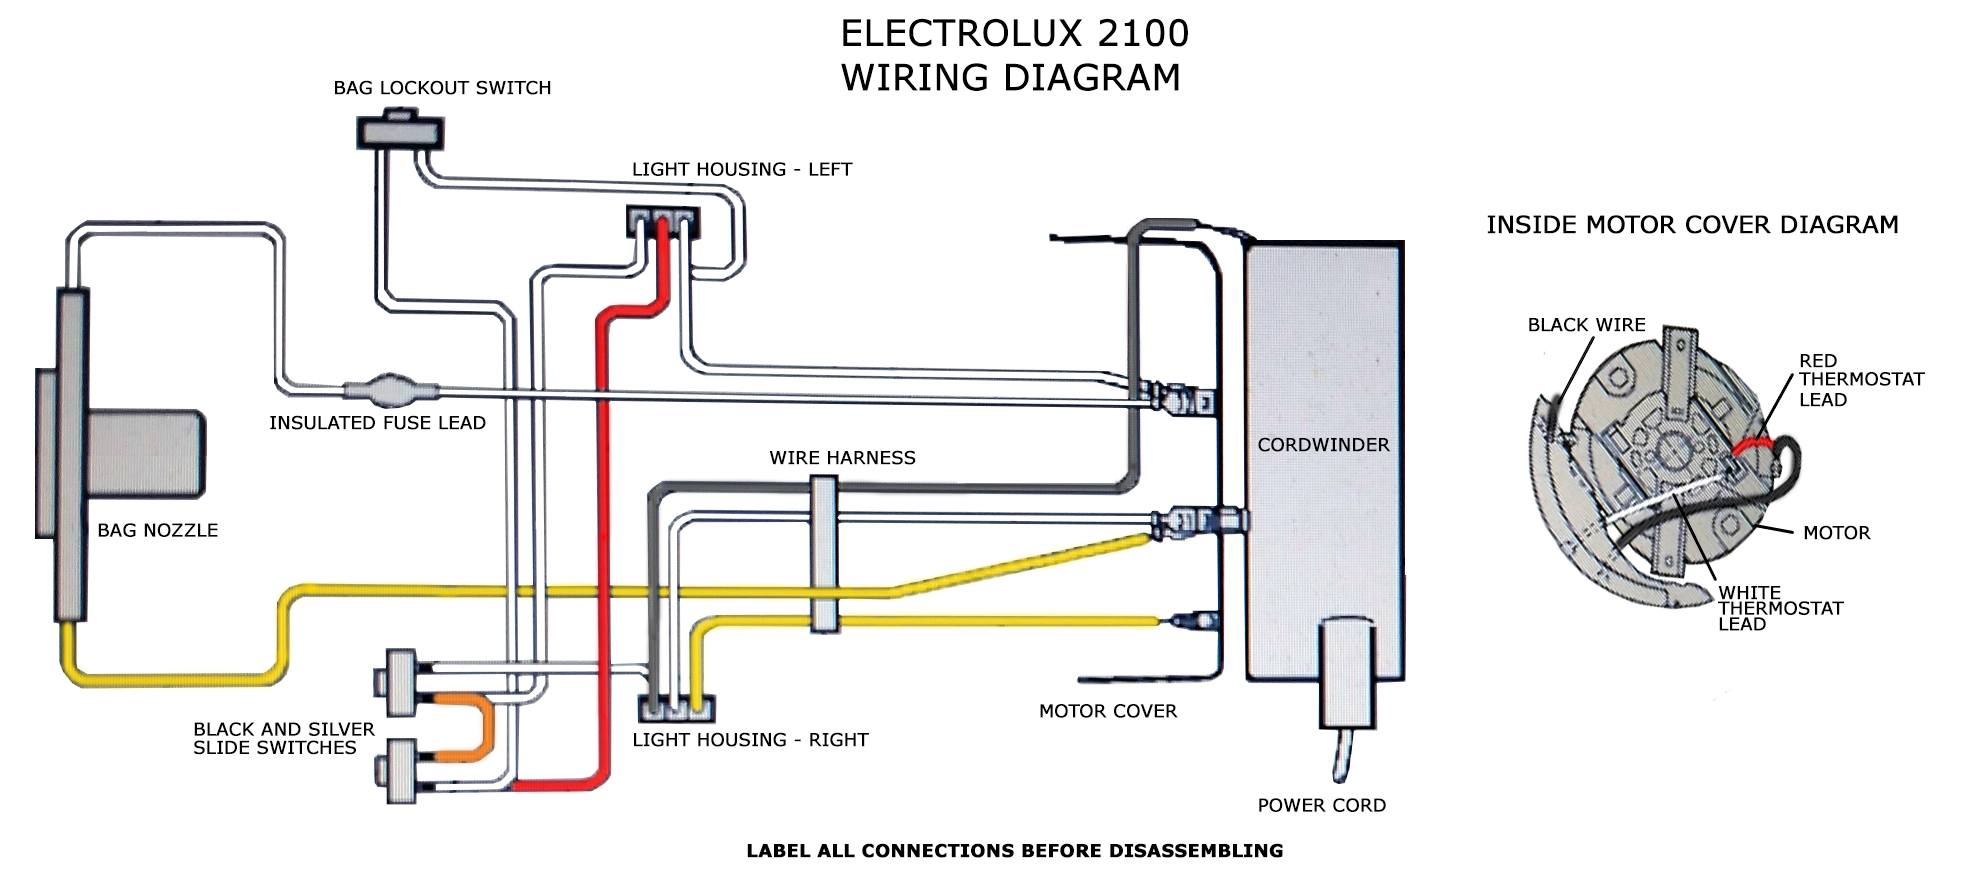 2100 wiring diagram miele vacuum wiring diagram osram wiring diagram \u2022 wiring diagram filter queen wiring diagram at gsmx.co